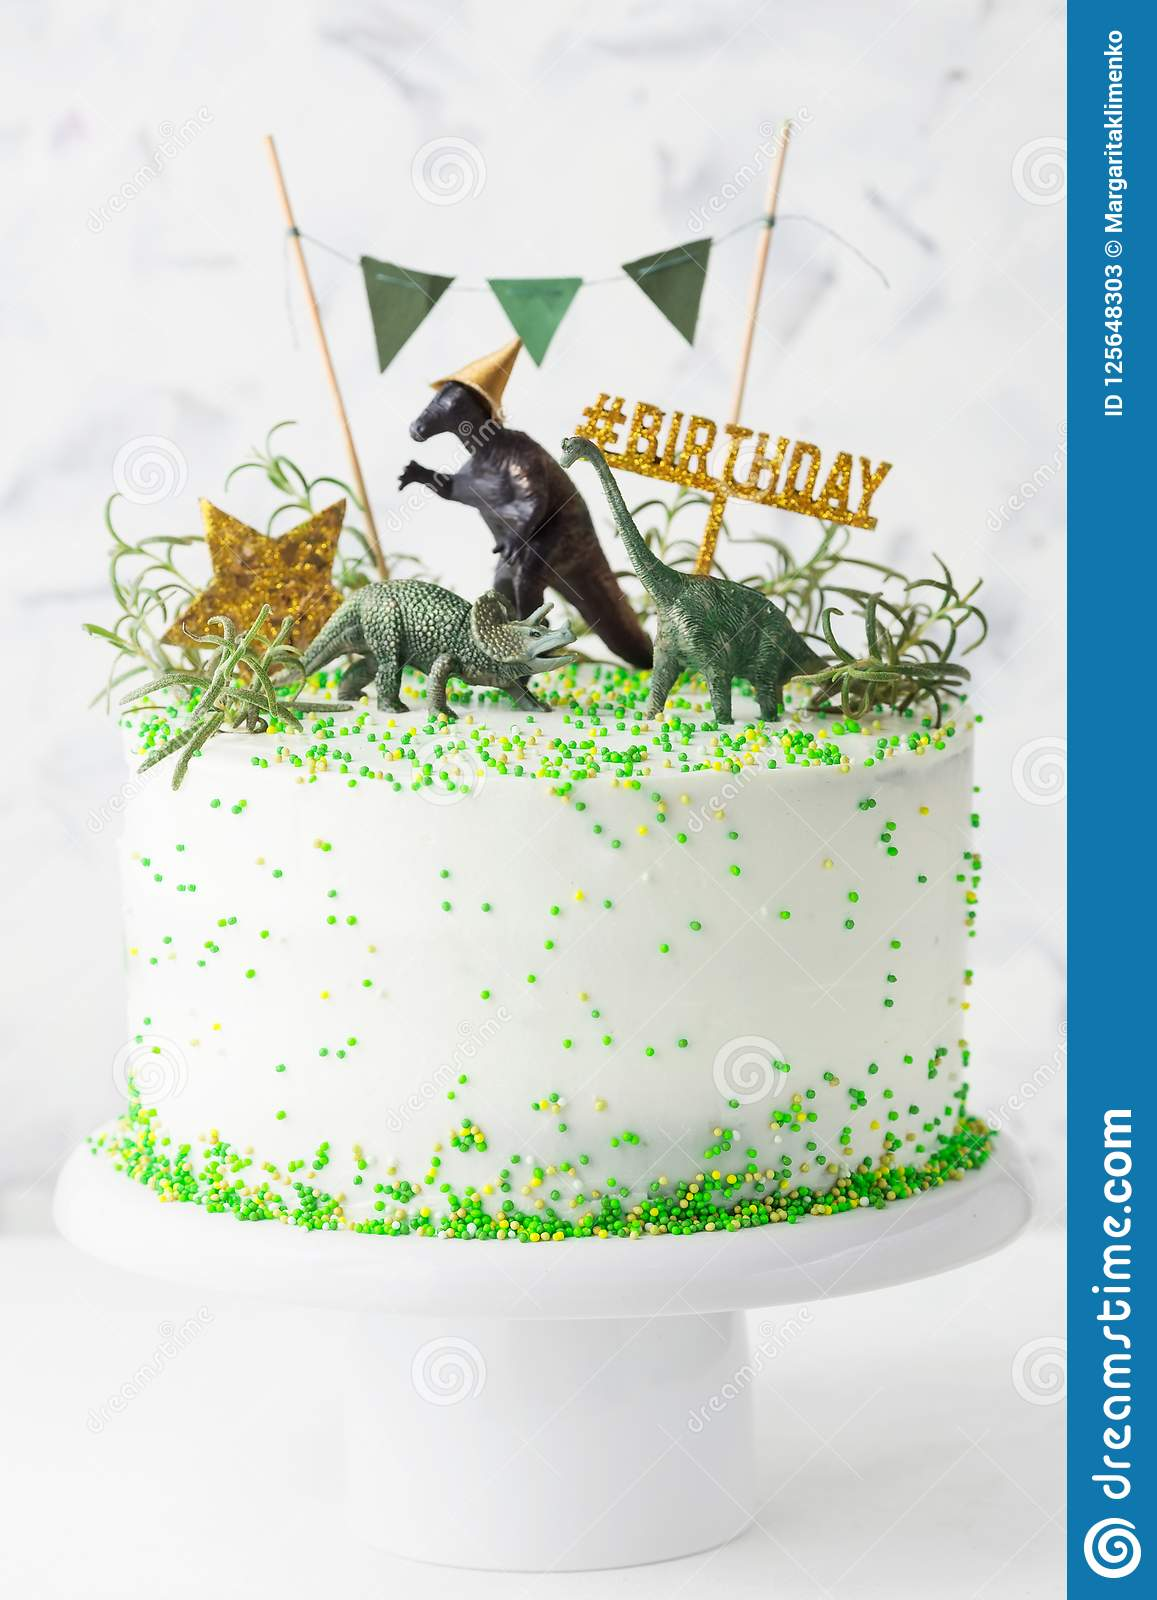 Tremendous Birthday Cake With Dinosaur Stock Image Image Of Nobody Funny Birthday Cards Online Alyptdamsfinfo